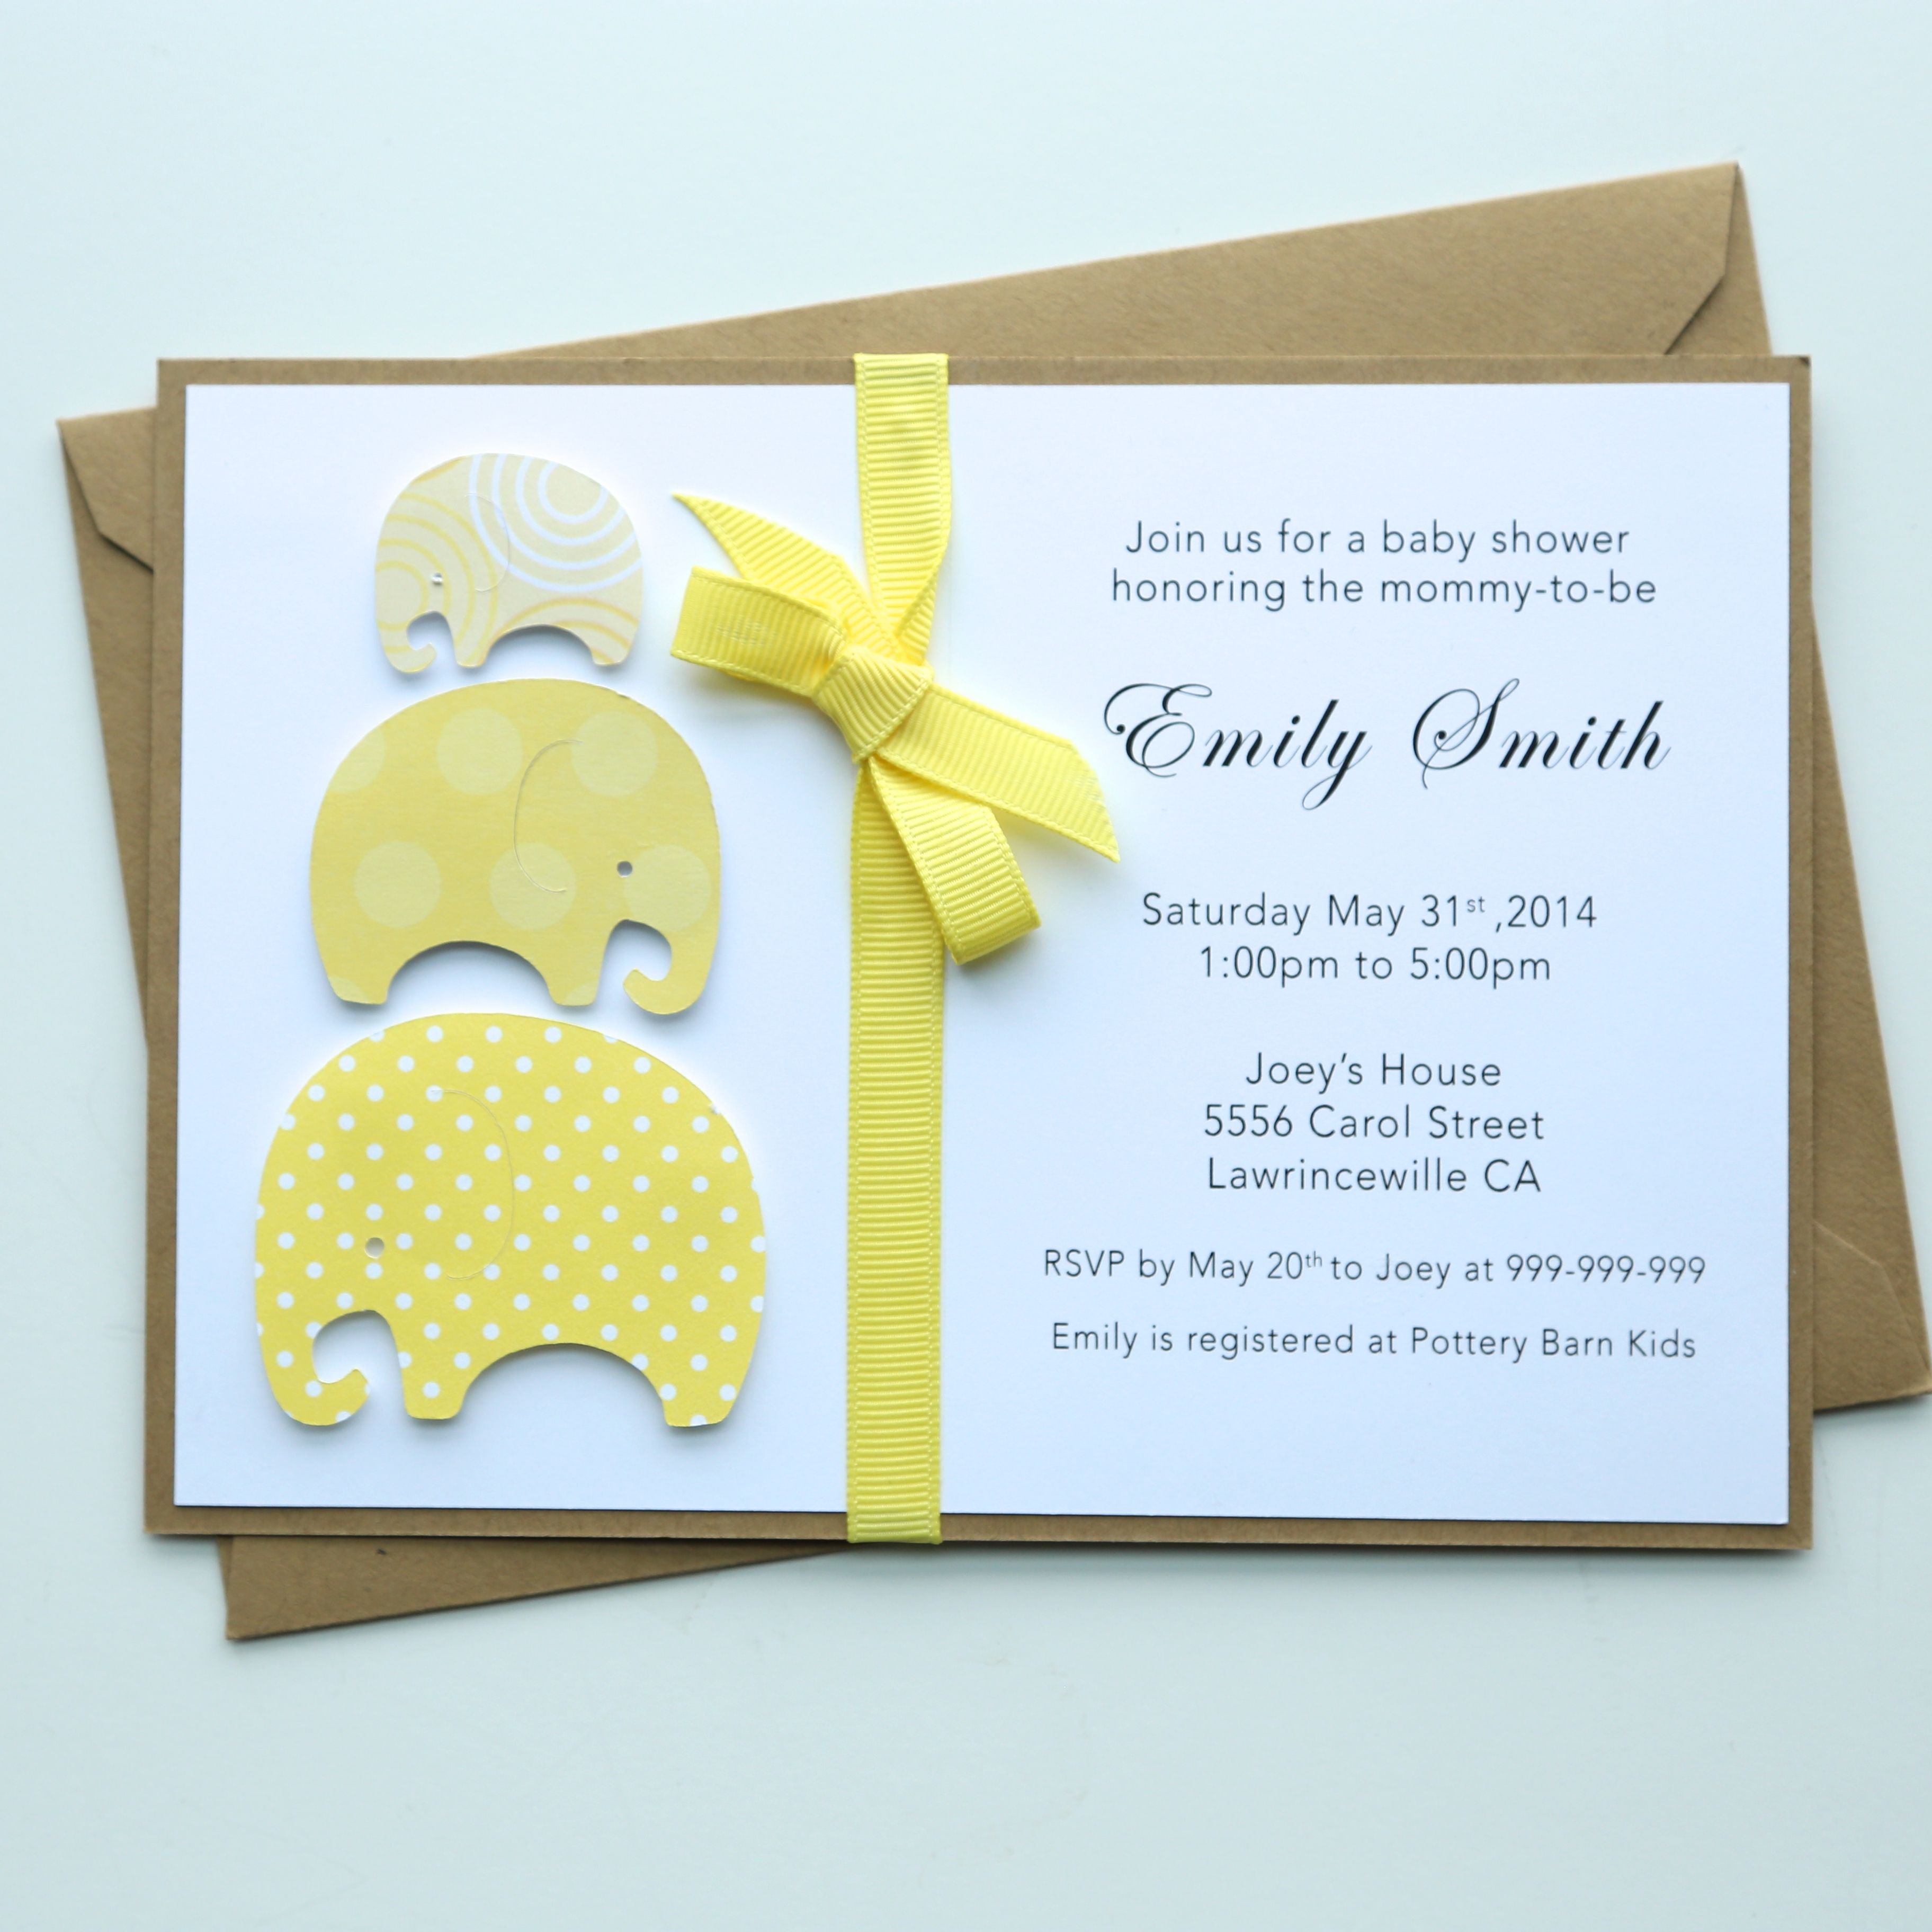 Handmade Baby Shower Invitation